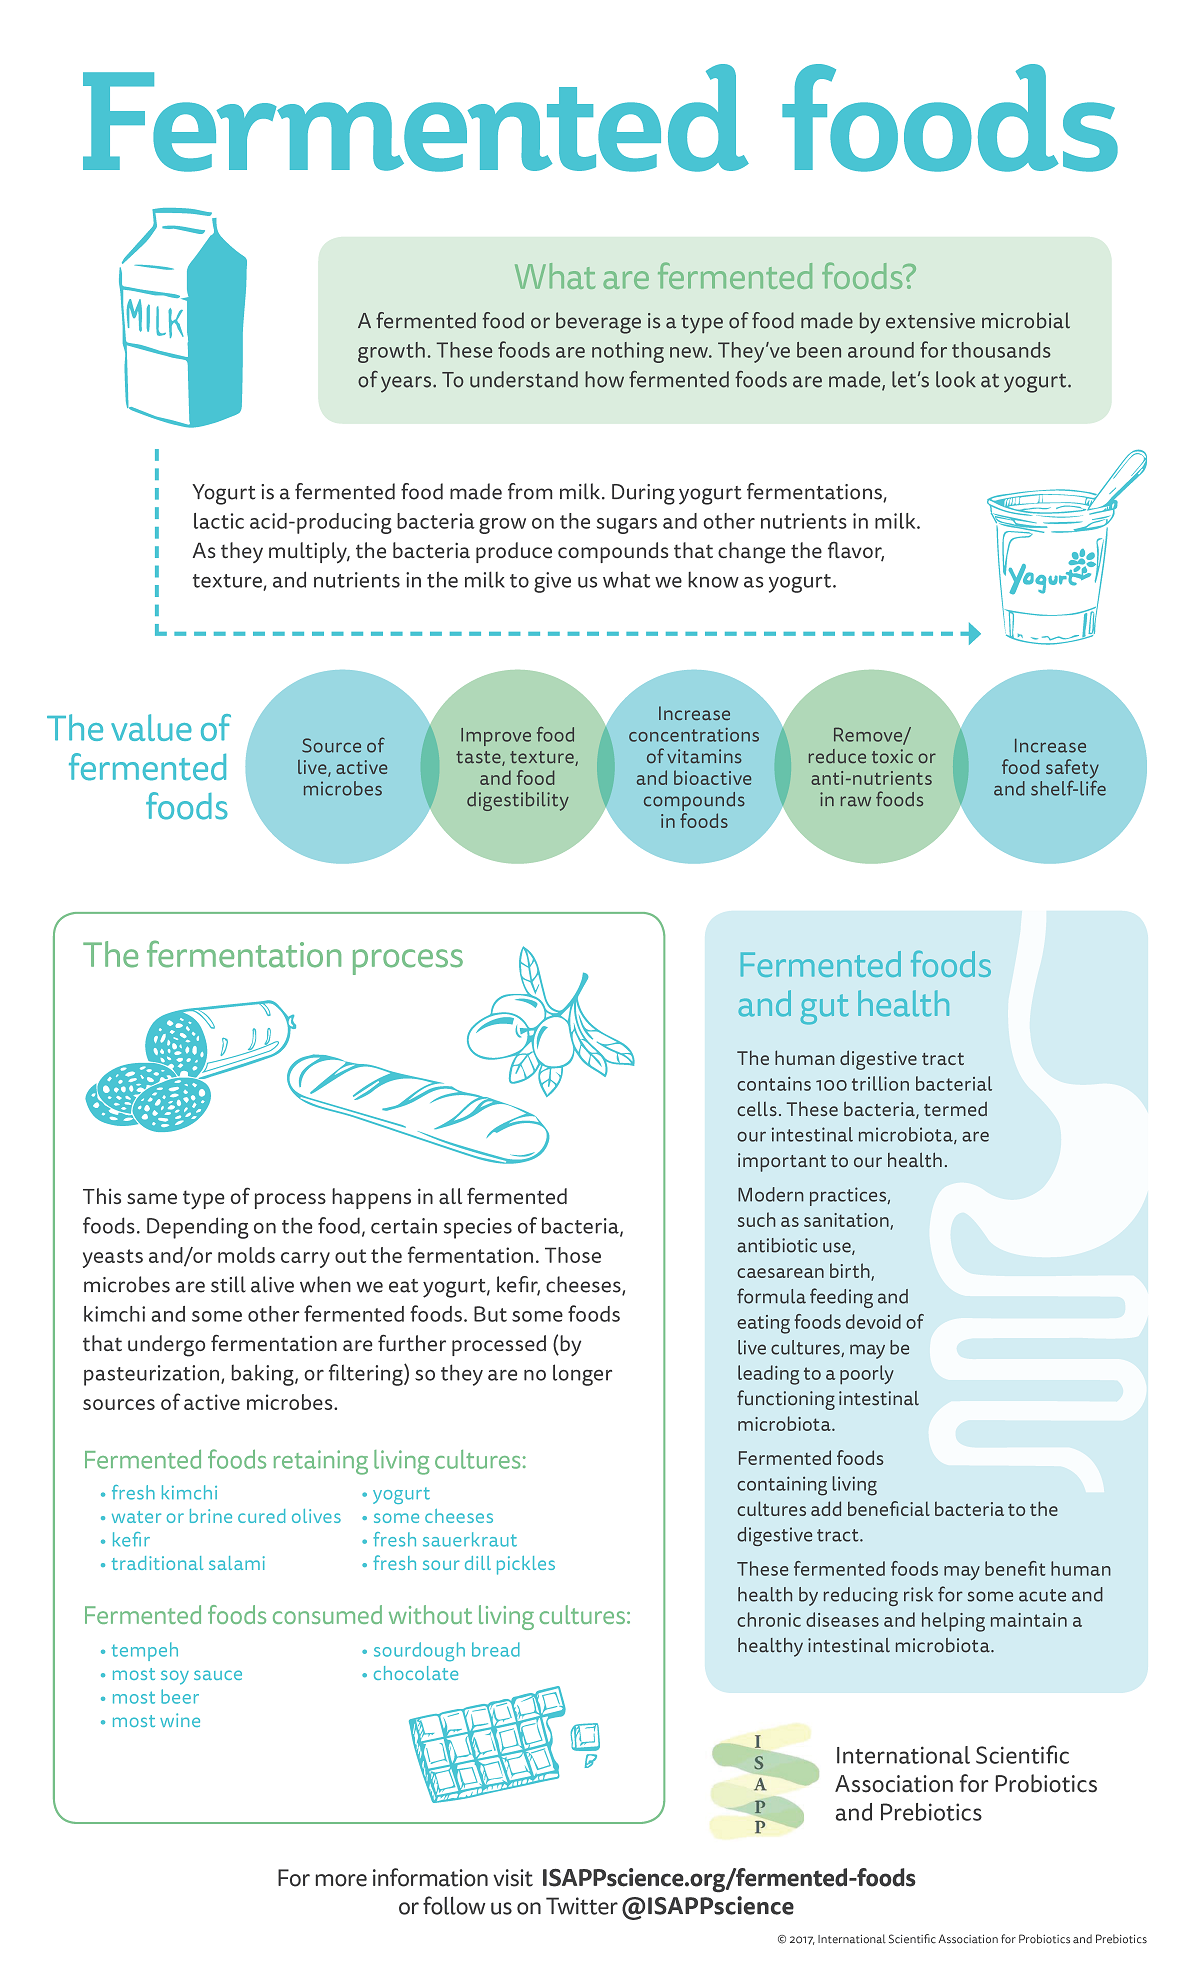 Infographic showing how fermented foods provide a health benefit, which ones have active cultures, etc